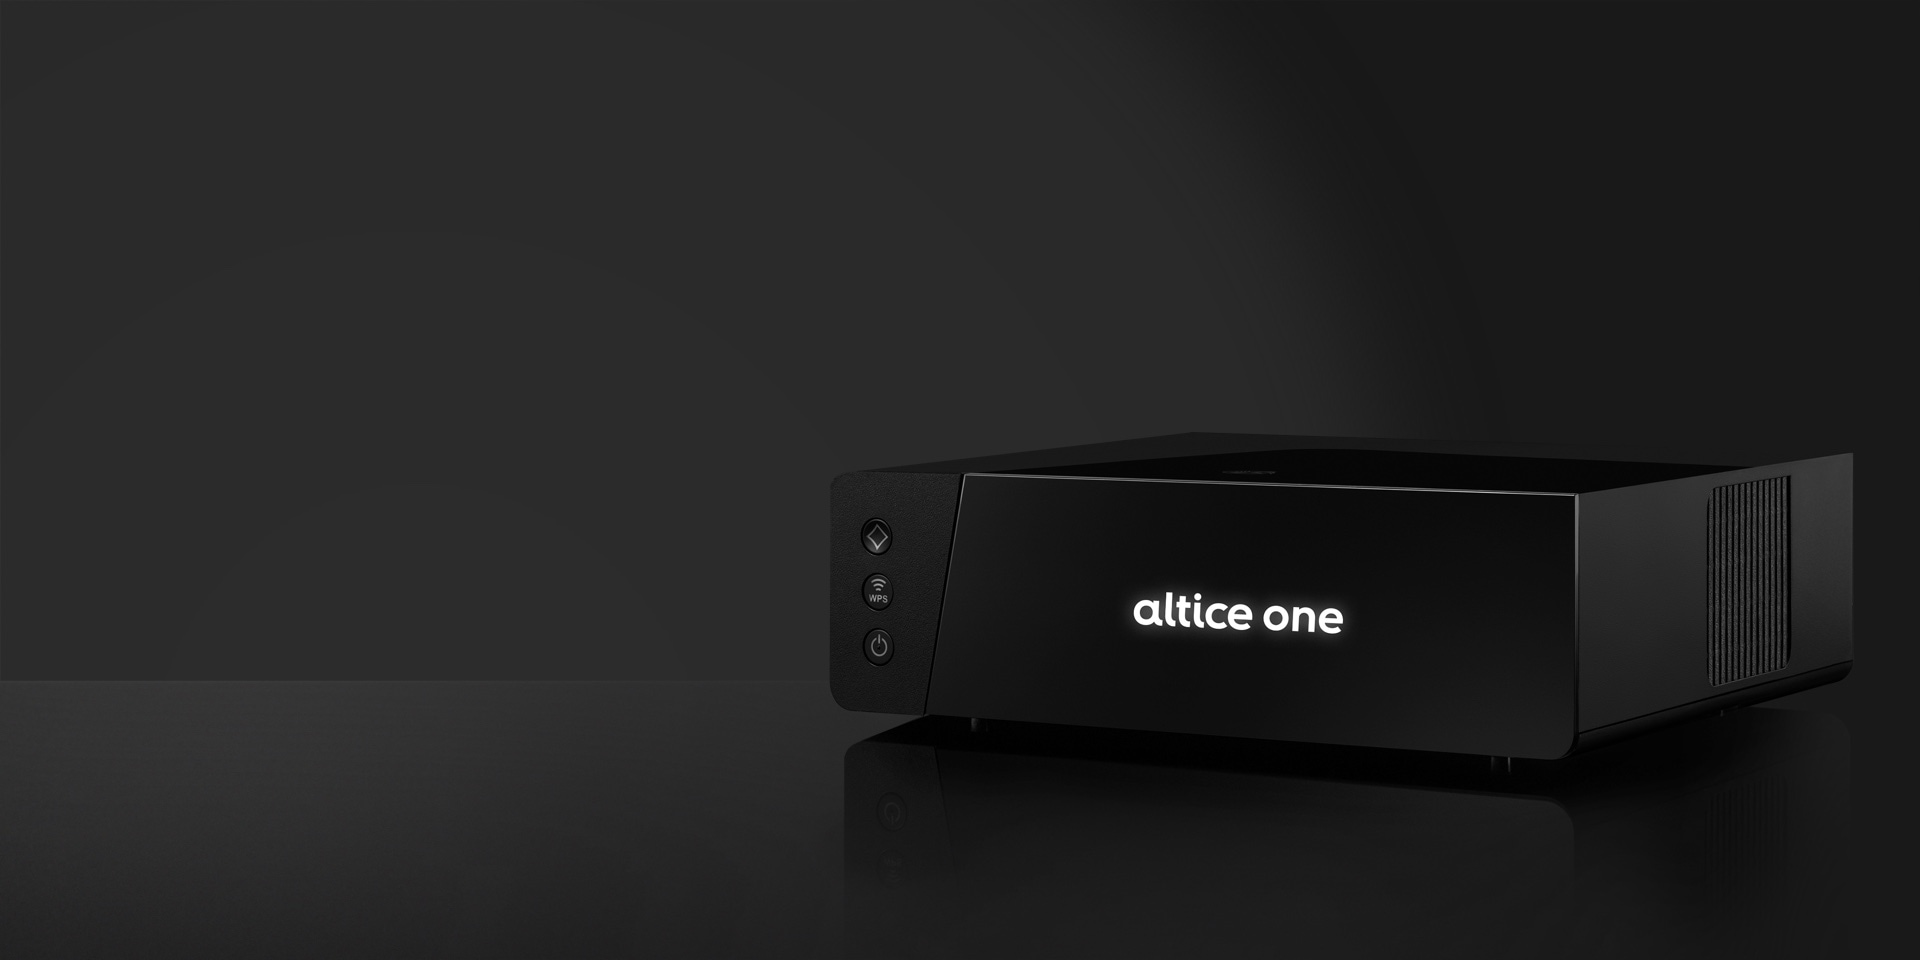 Photo of an all-in-one Altice One advanced WiFi router